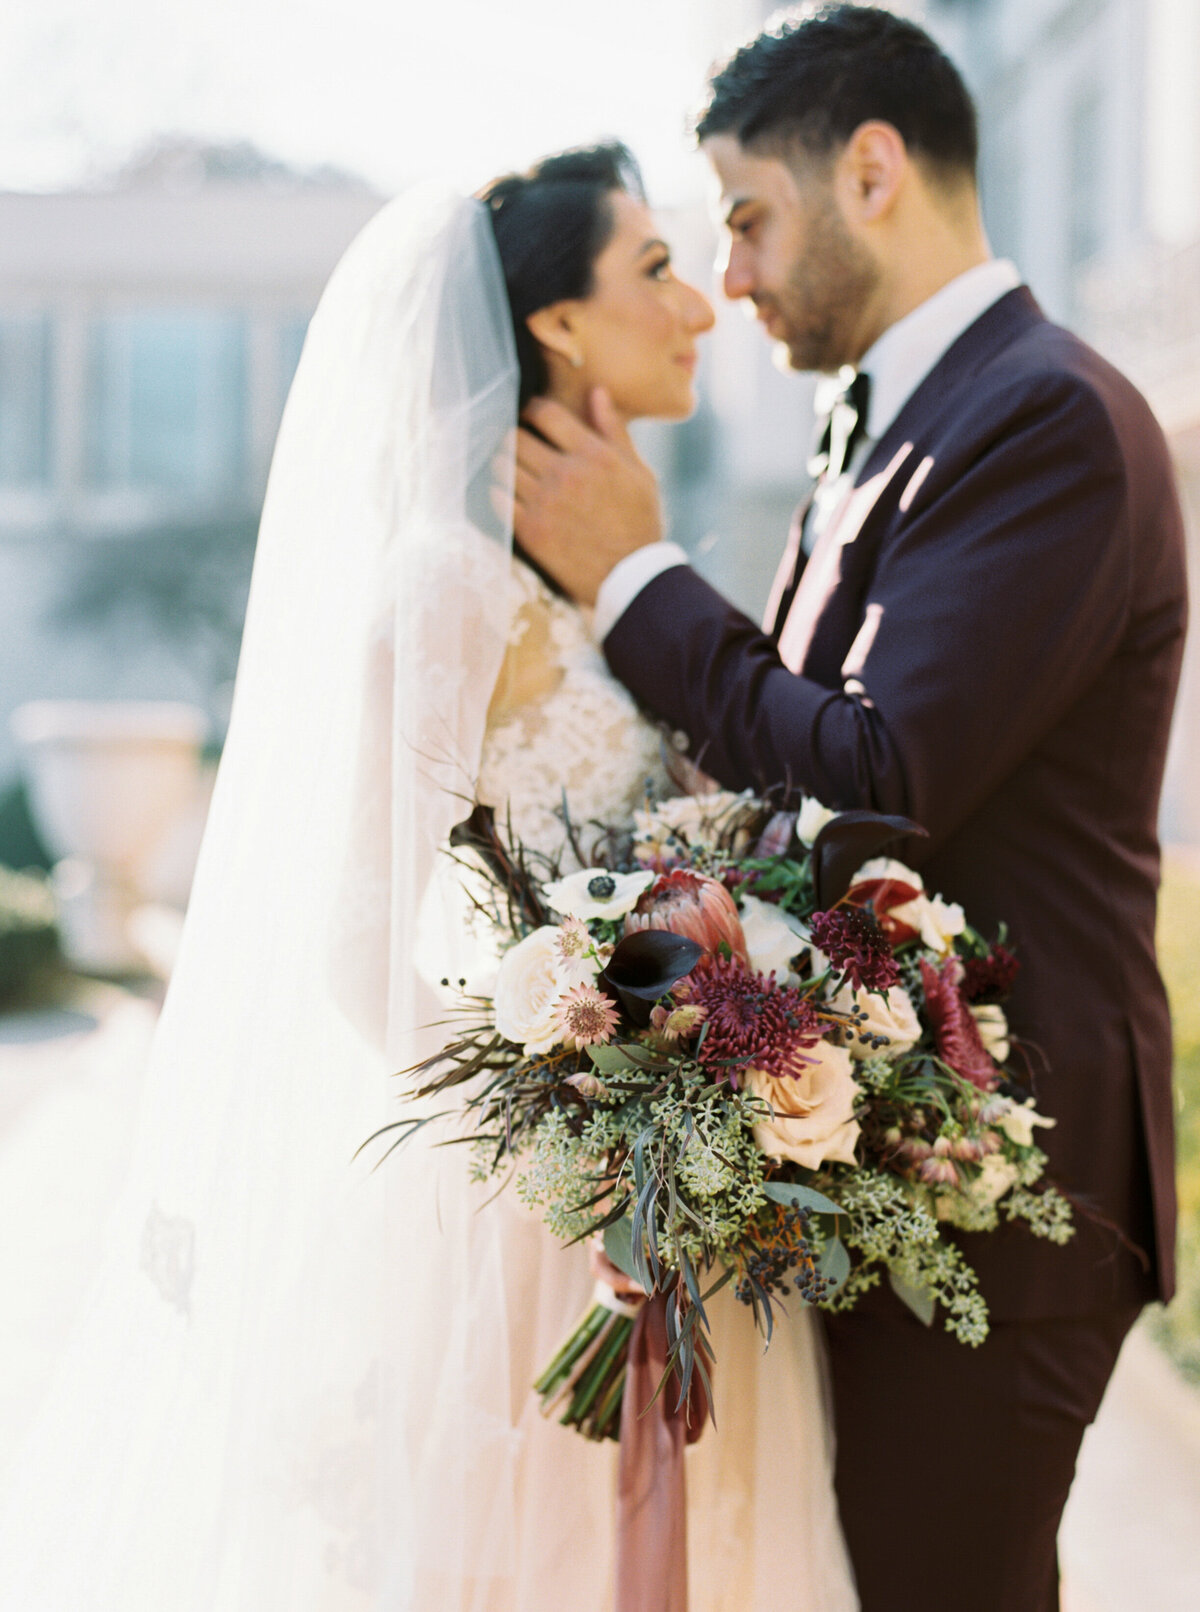 Kaylea Moreno_wedding gallery - Rami-Cassandra-Wedding-krmorenophoto-168